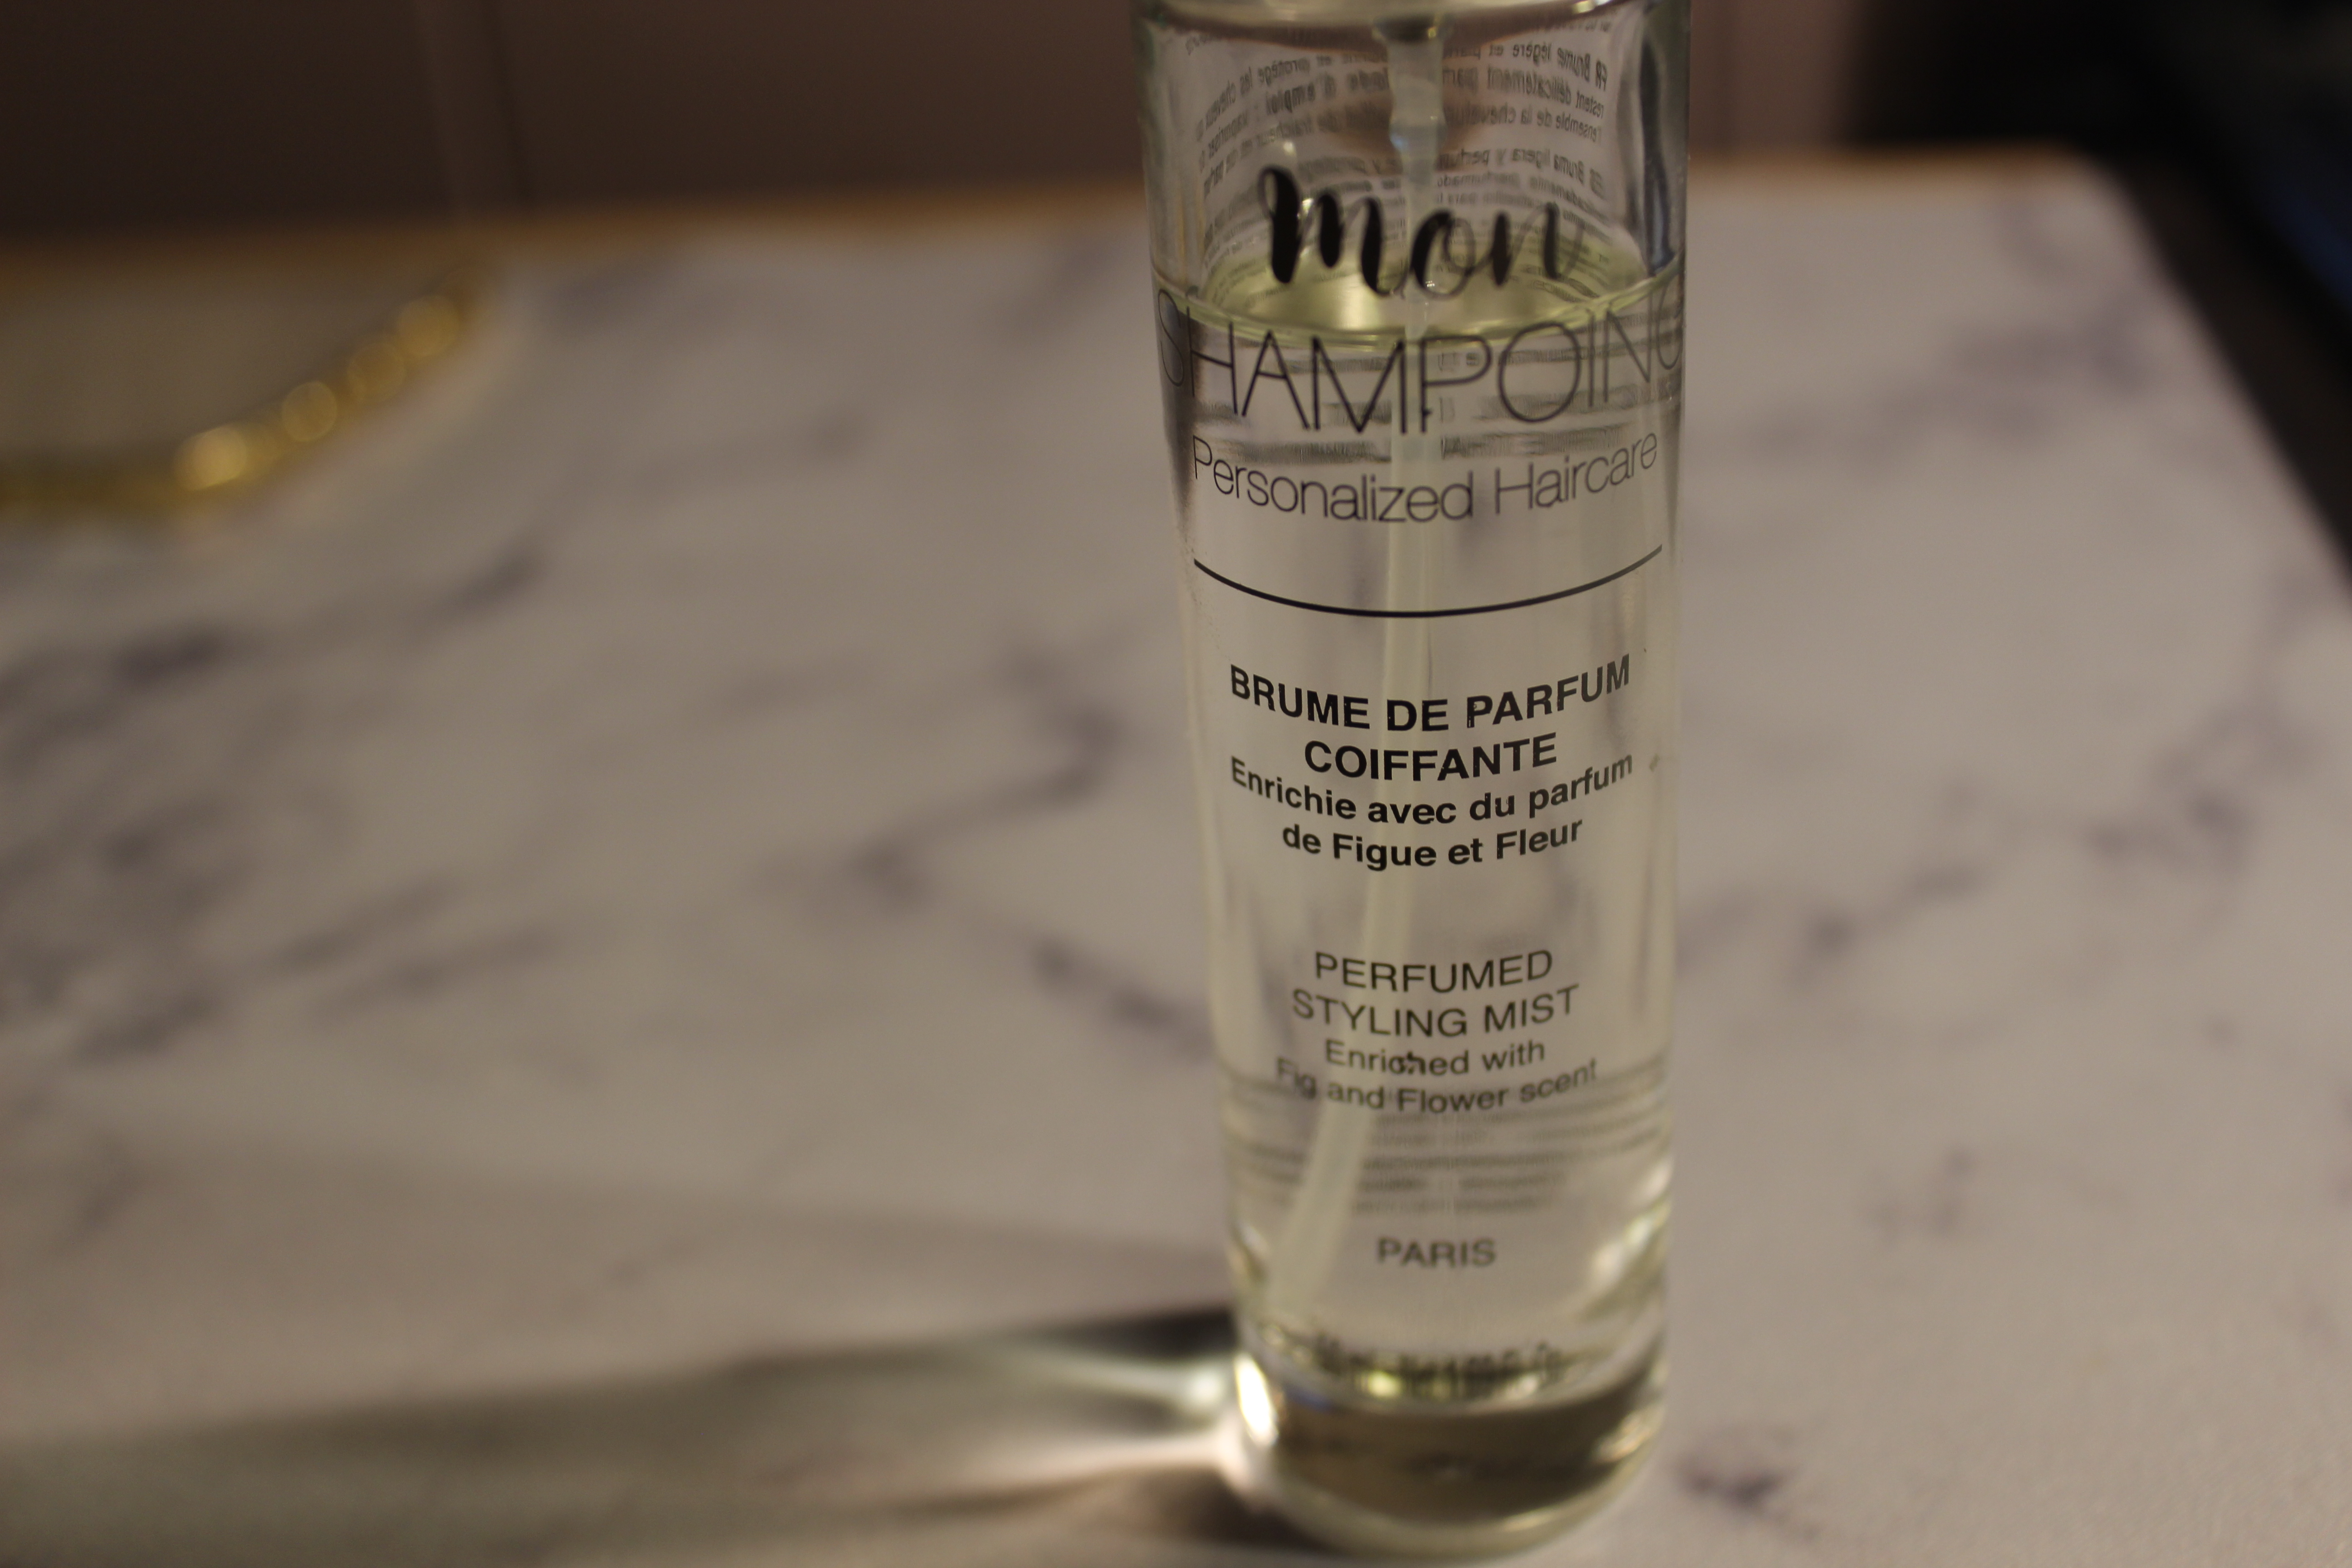 Mon Shampoing Perfumed Styling Mist